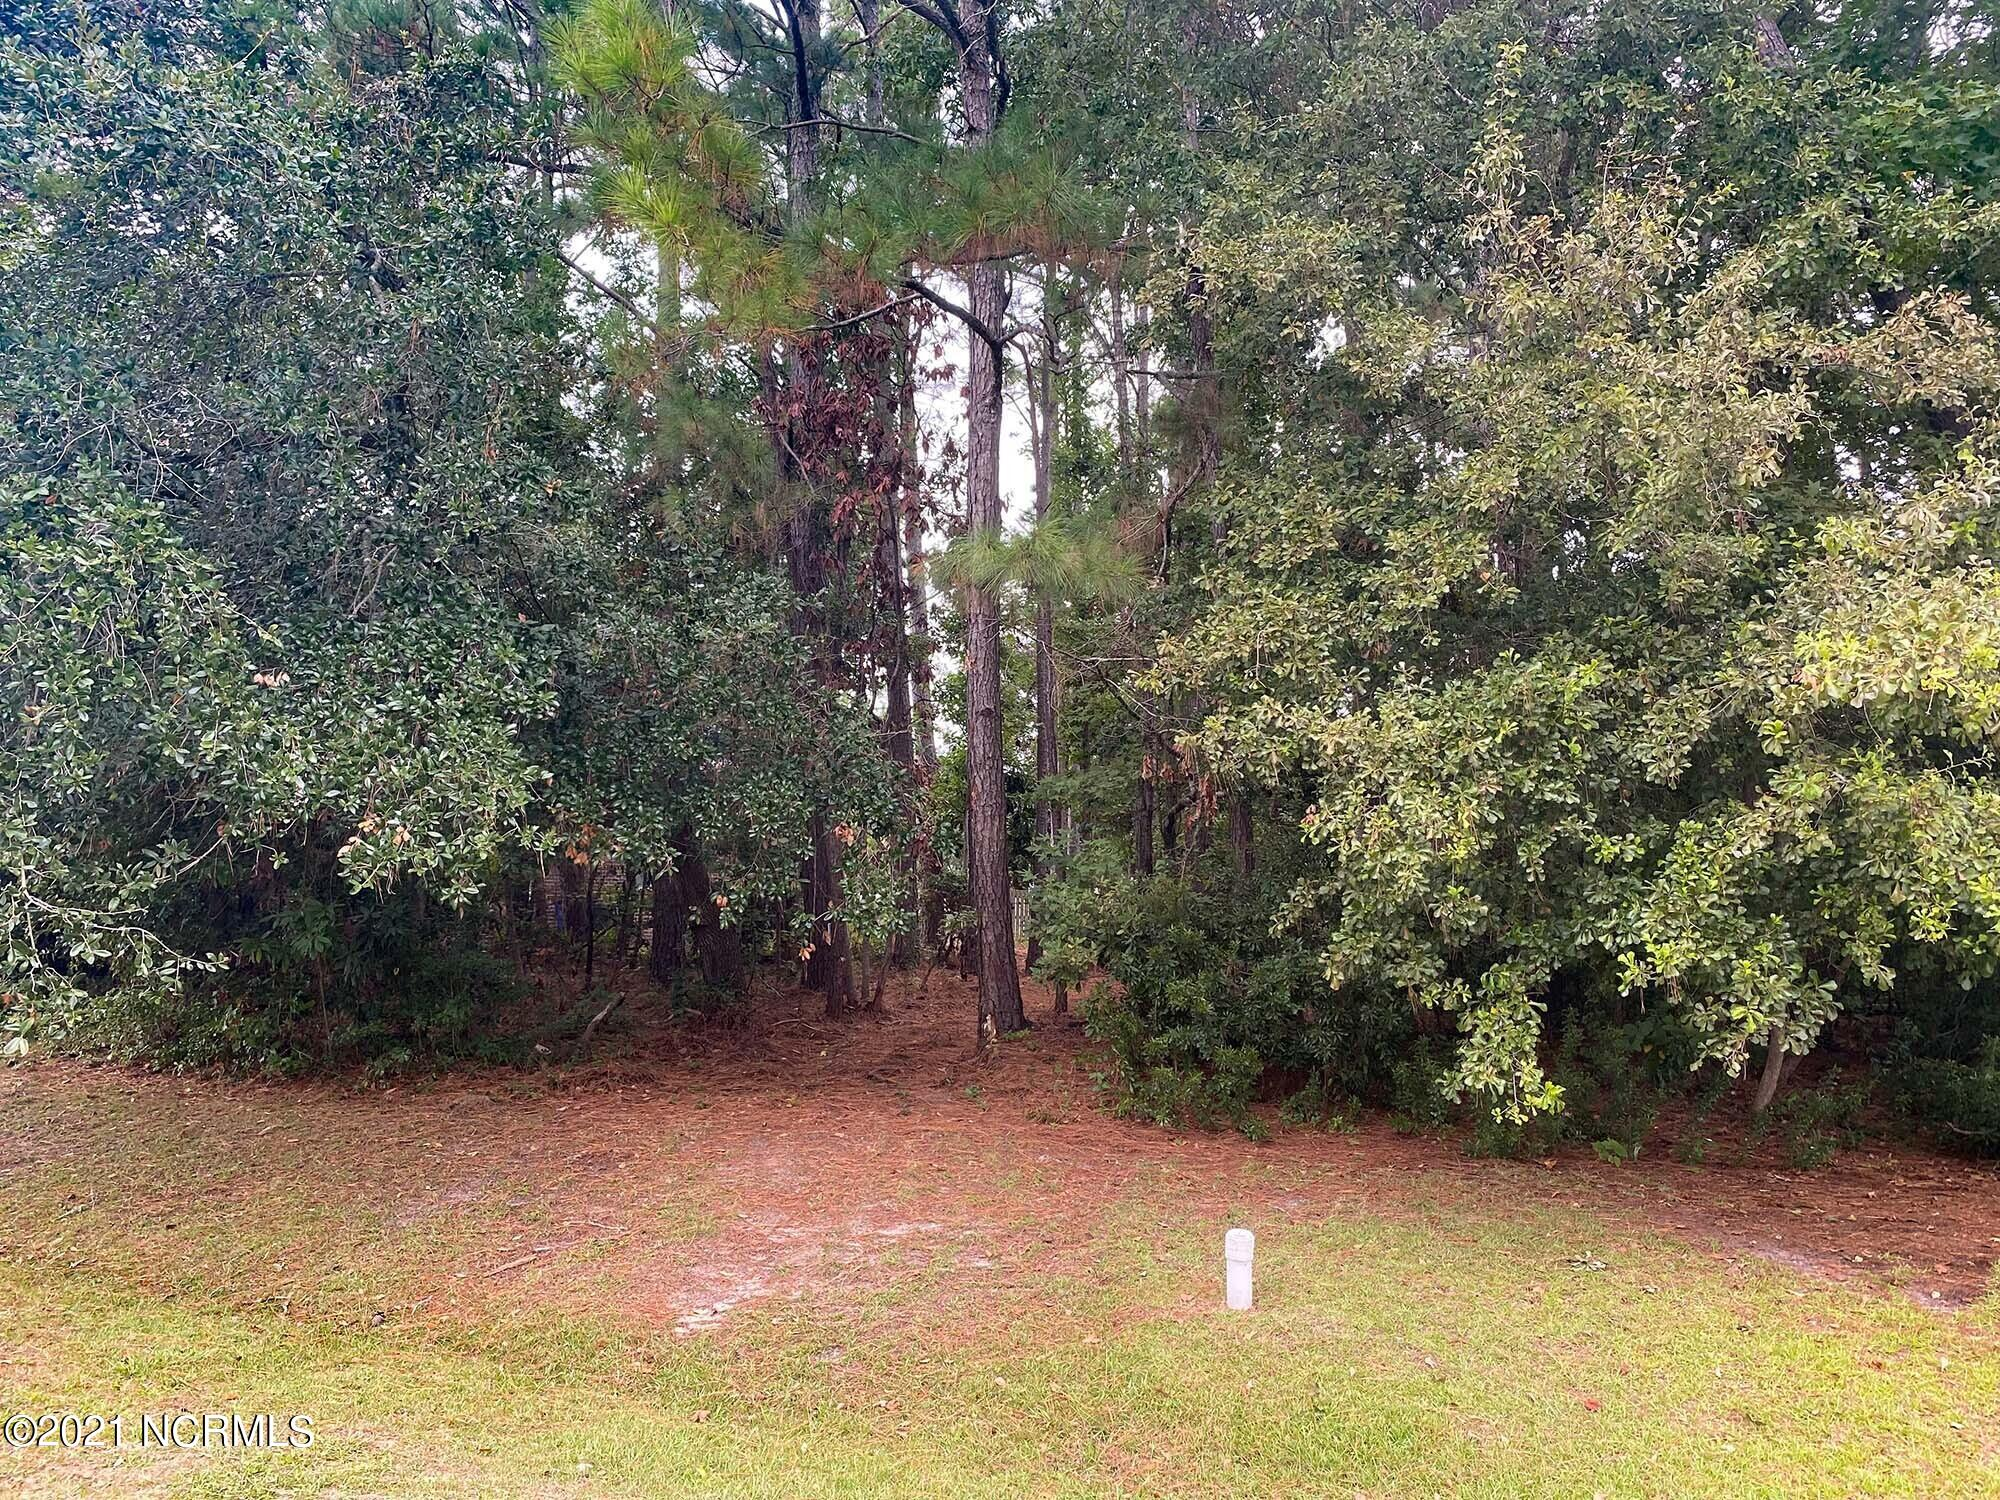 Cul-de-sac lot located in the golfing community of North Shore Country Club, minutes to the beautiful white sand of North Topsail Beach. Measuring .36 acres, this wooded lot is ready for you to make it your own. It's convenient to shopping and dining, and within walking distance of neighborhood amenities (golf, pool, and tennis), which are available to residents at an additional cost.